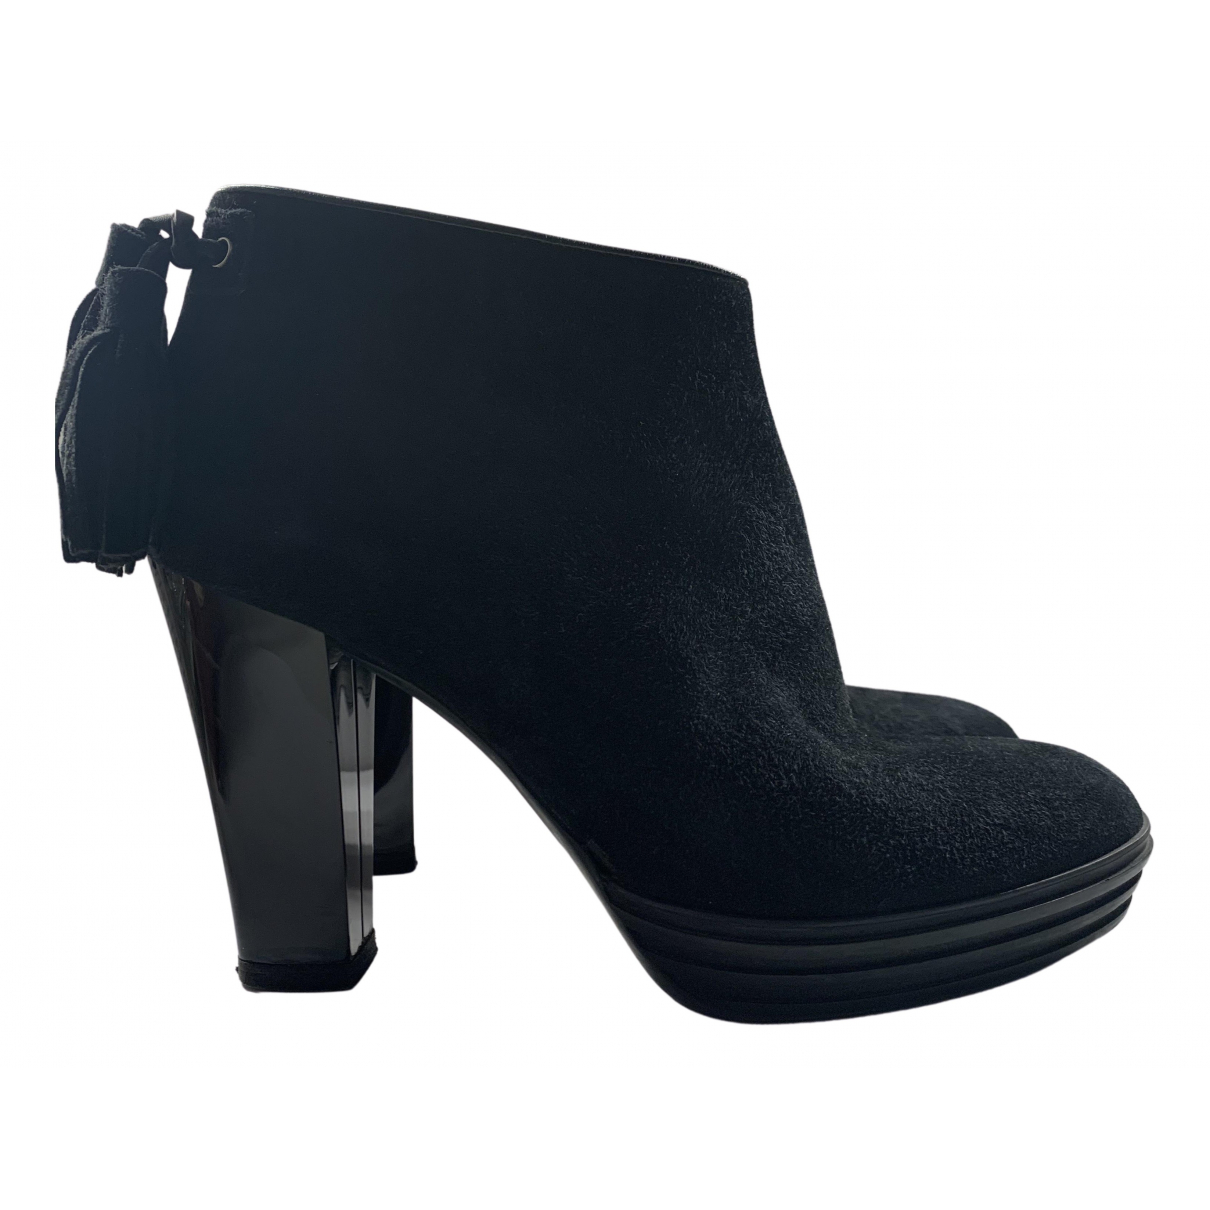 Hogan N Black Suede Ankle boots for Women 39 EU